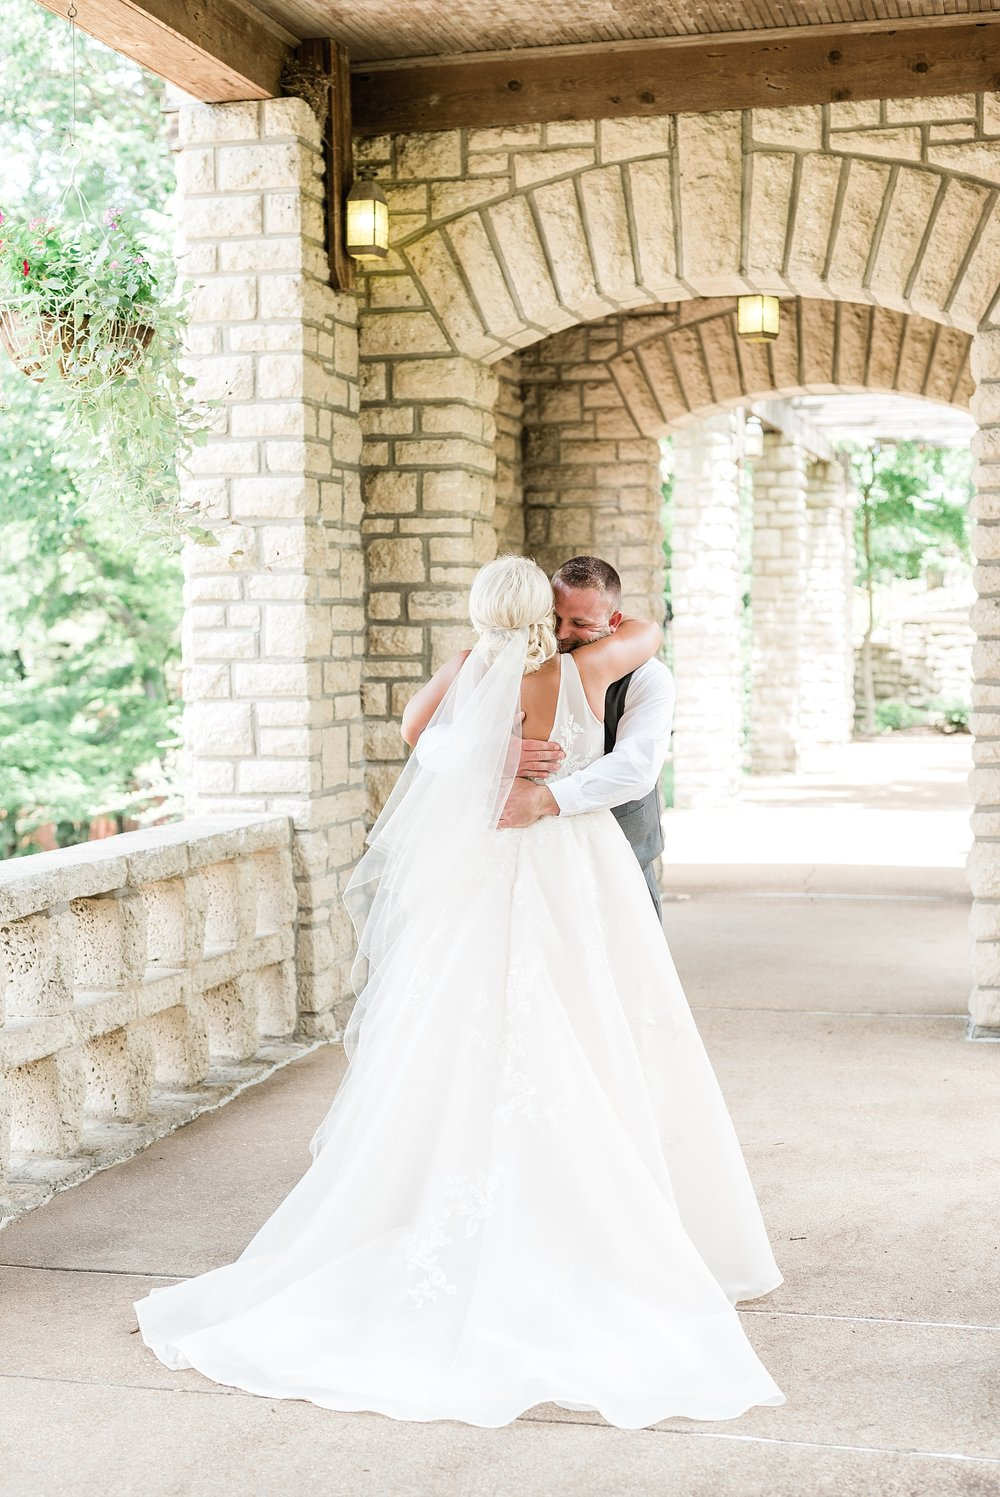 Rose Gold, White, and Greenery High Class Summer Wedding at The Millbottom in Downtown Jefferson City by Kelsi Kliethermes Photography_0018.jpg